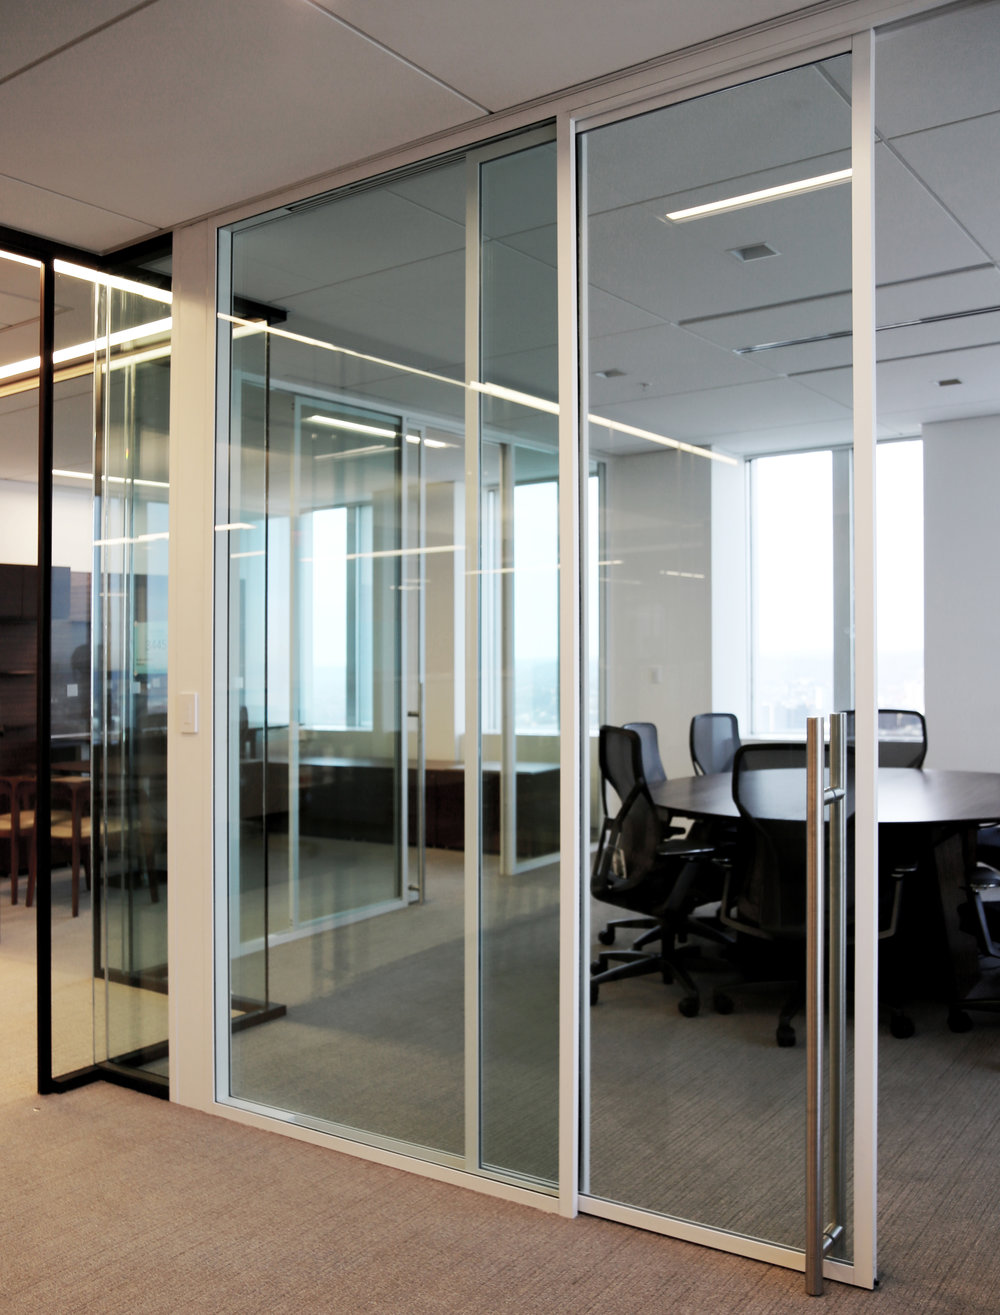 Modernus Dual Pane Conference Room Sliding Door Wall - Spaceworks AI.jpg